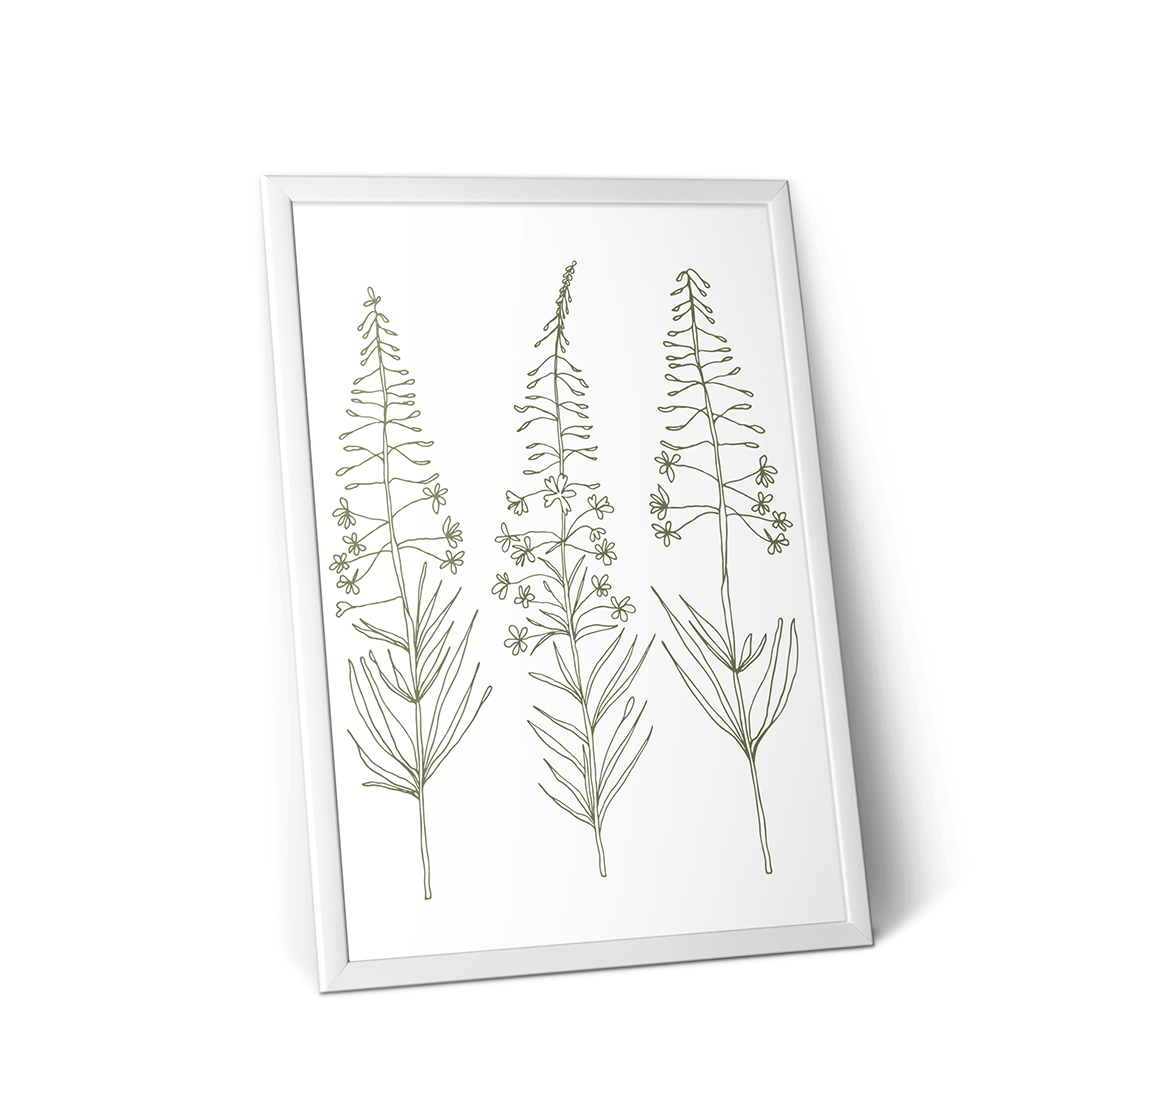 Hand drawn wild flowers and fern leaves example image 3